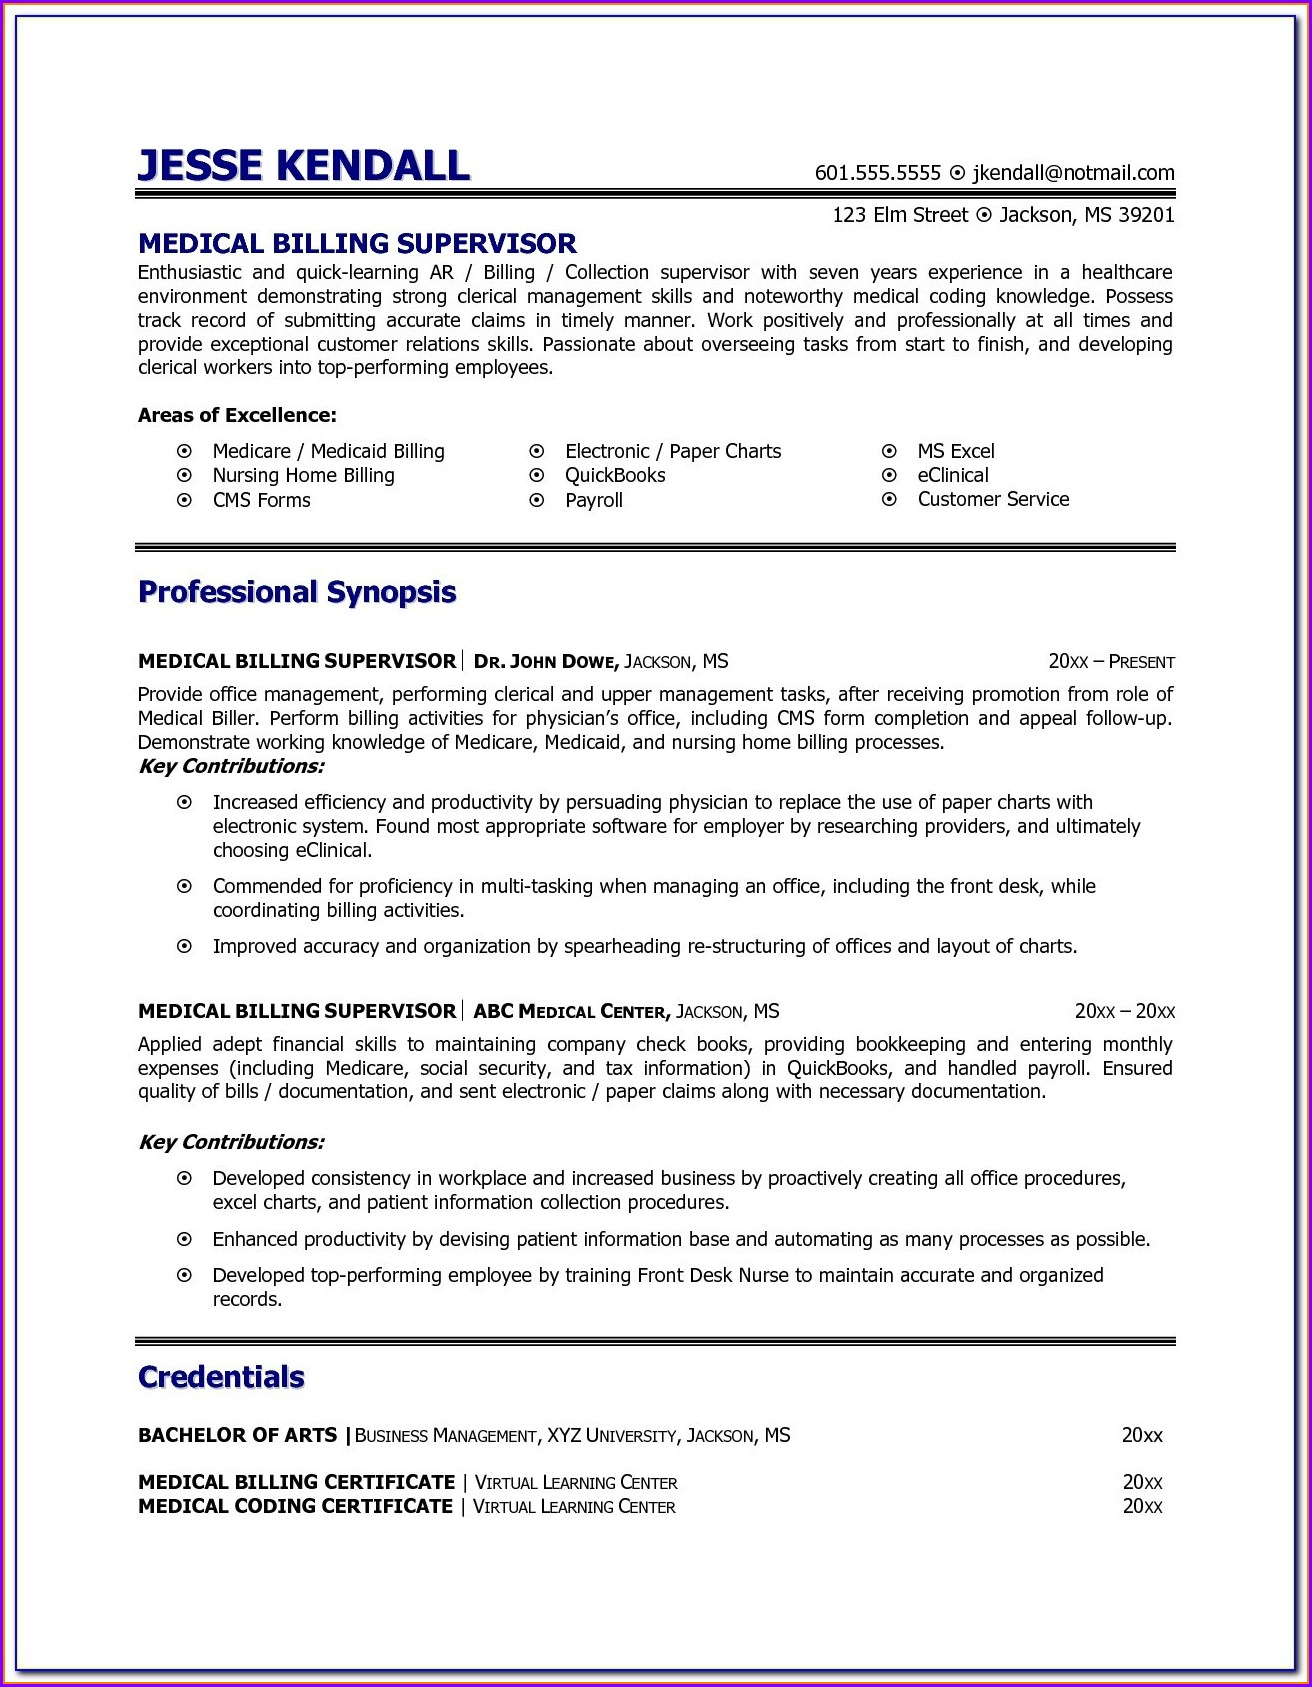 Resume For Medical Billing